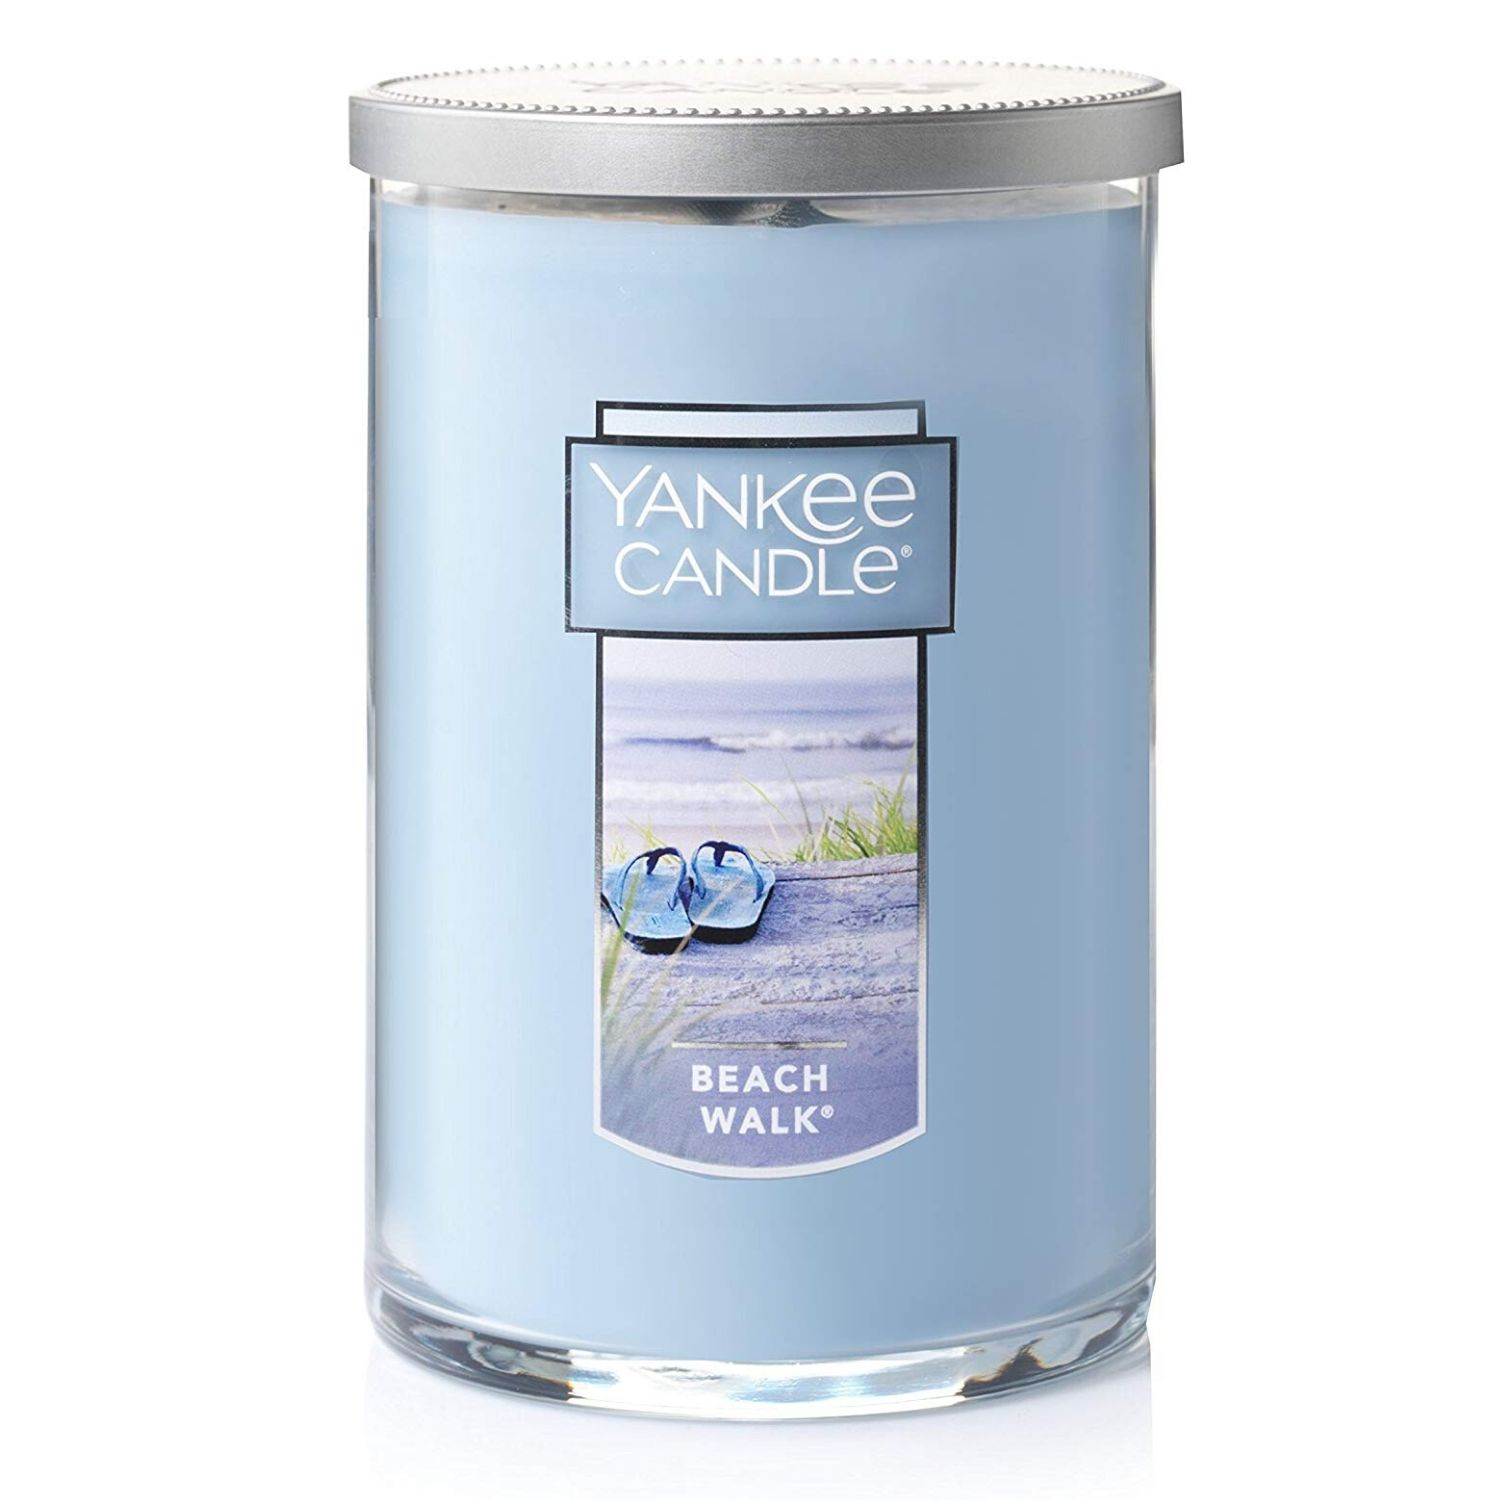 Yankee Candle Large 2-Wick Tumbler Candle, Beach Walk